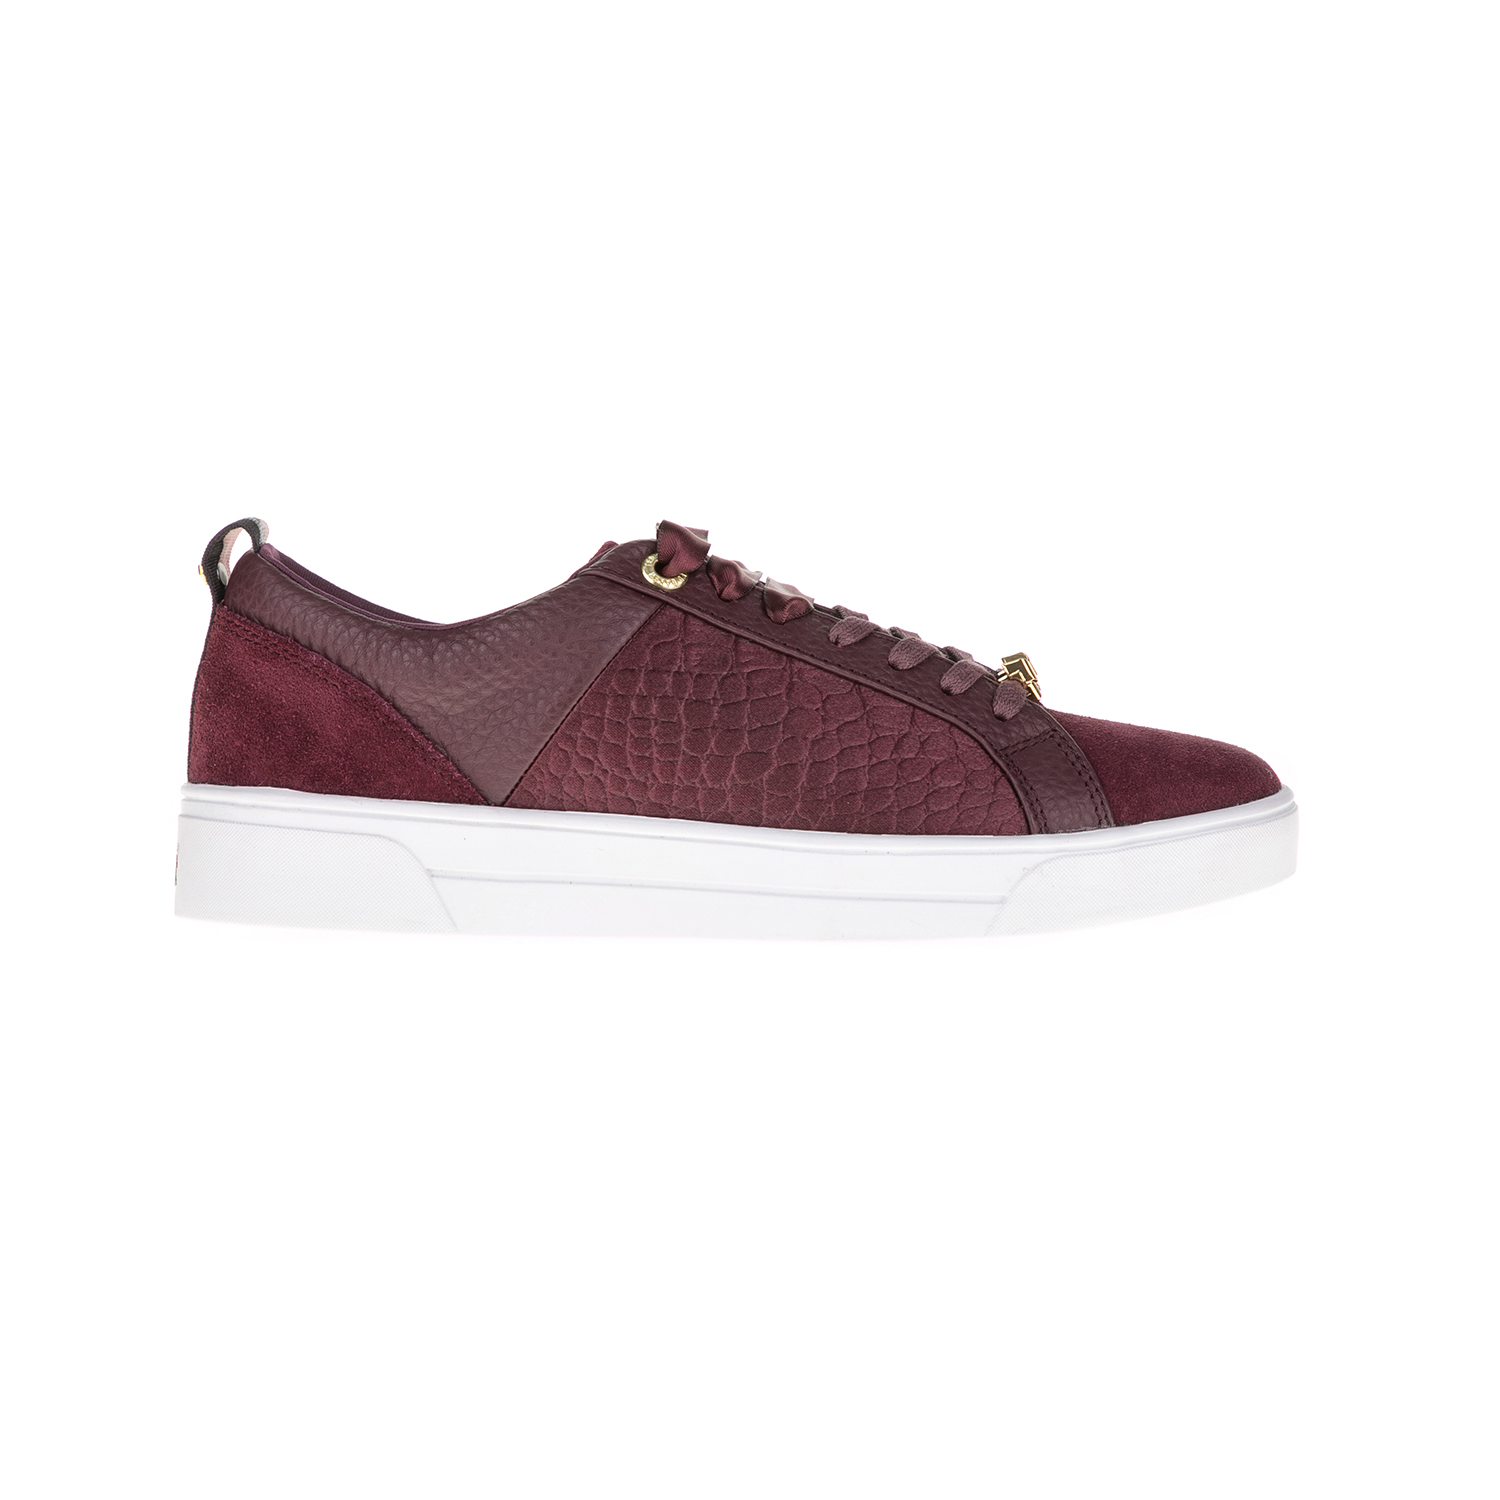 TED BAKER – Γυναικεία sneakers KULEI TED BAKER μοβ